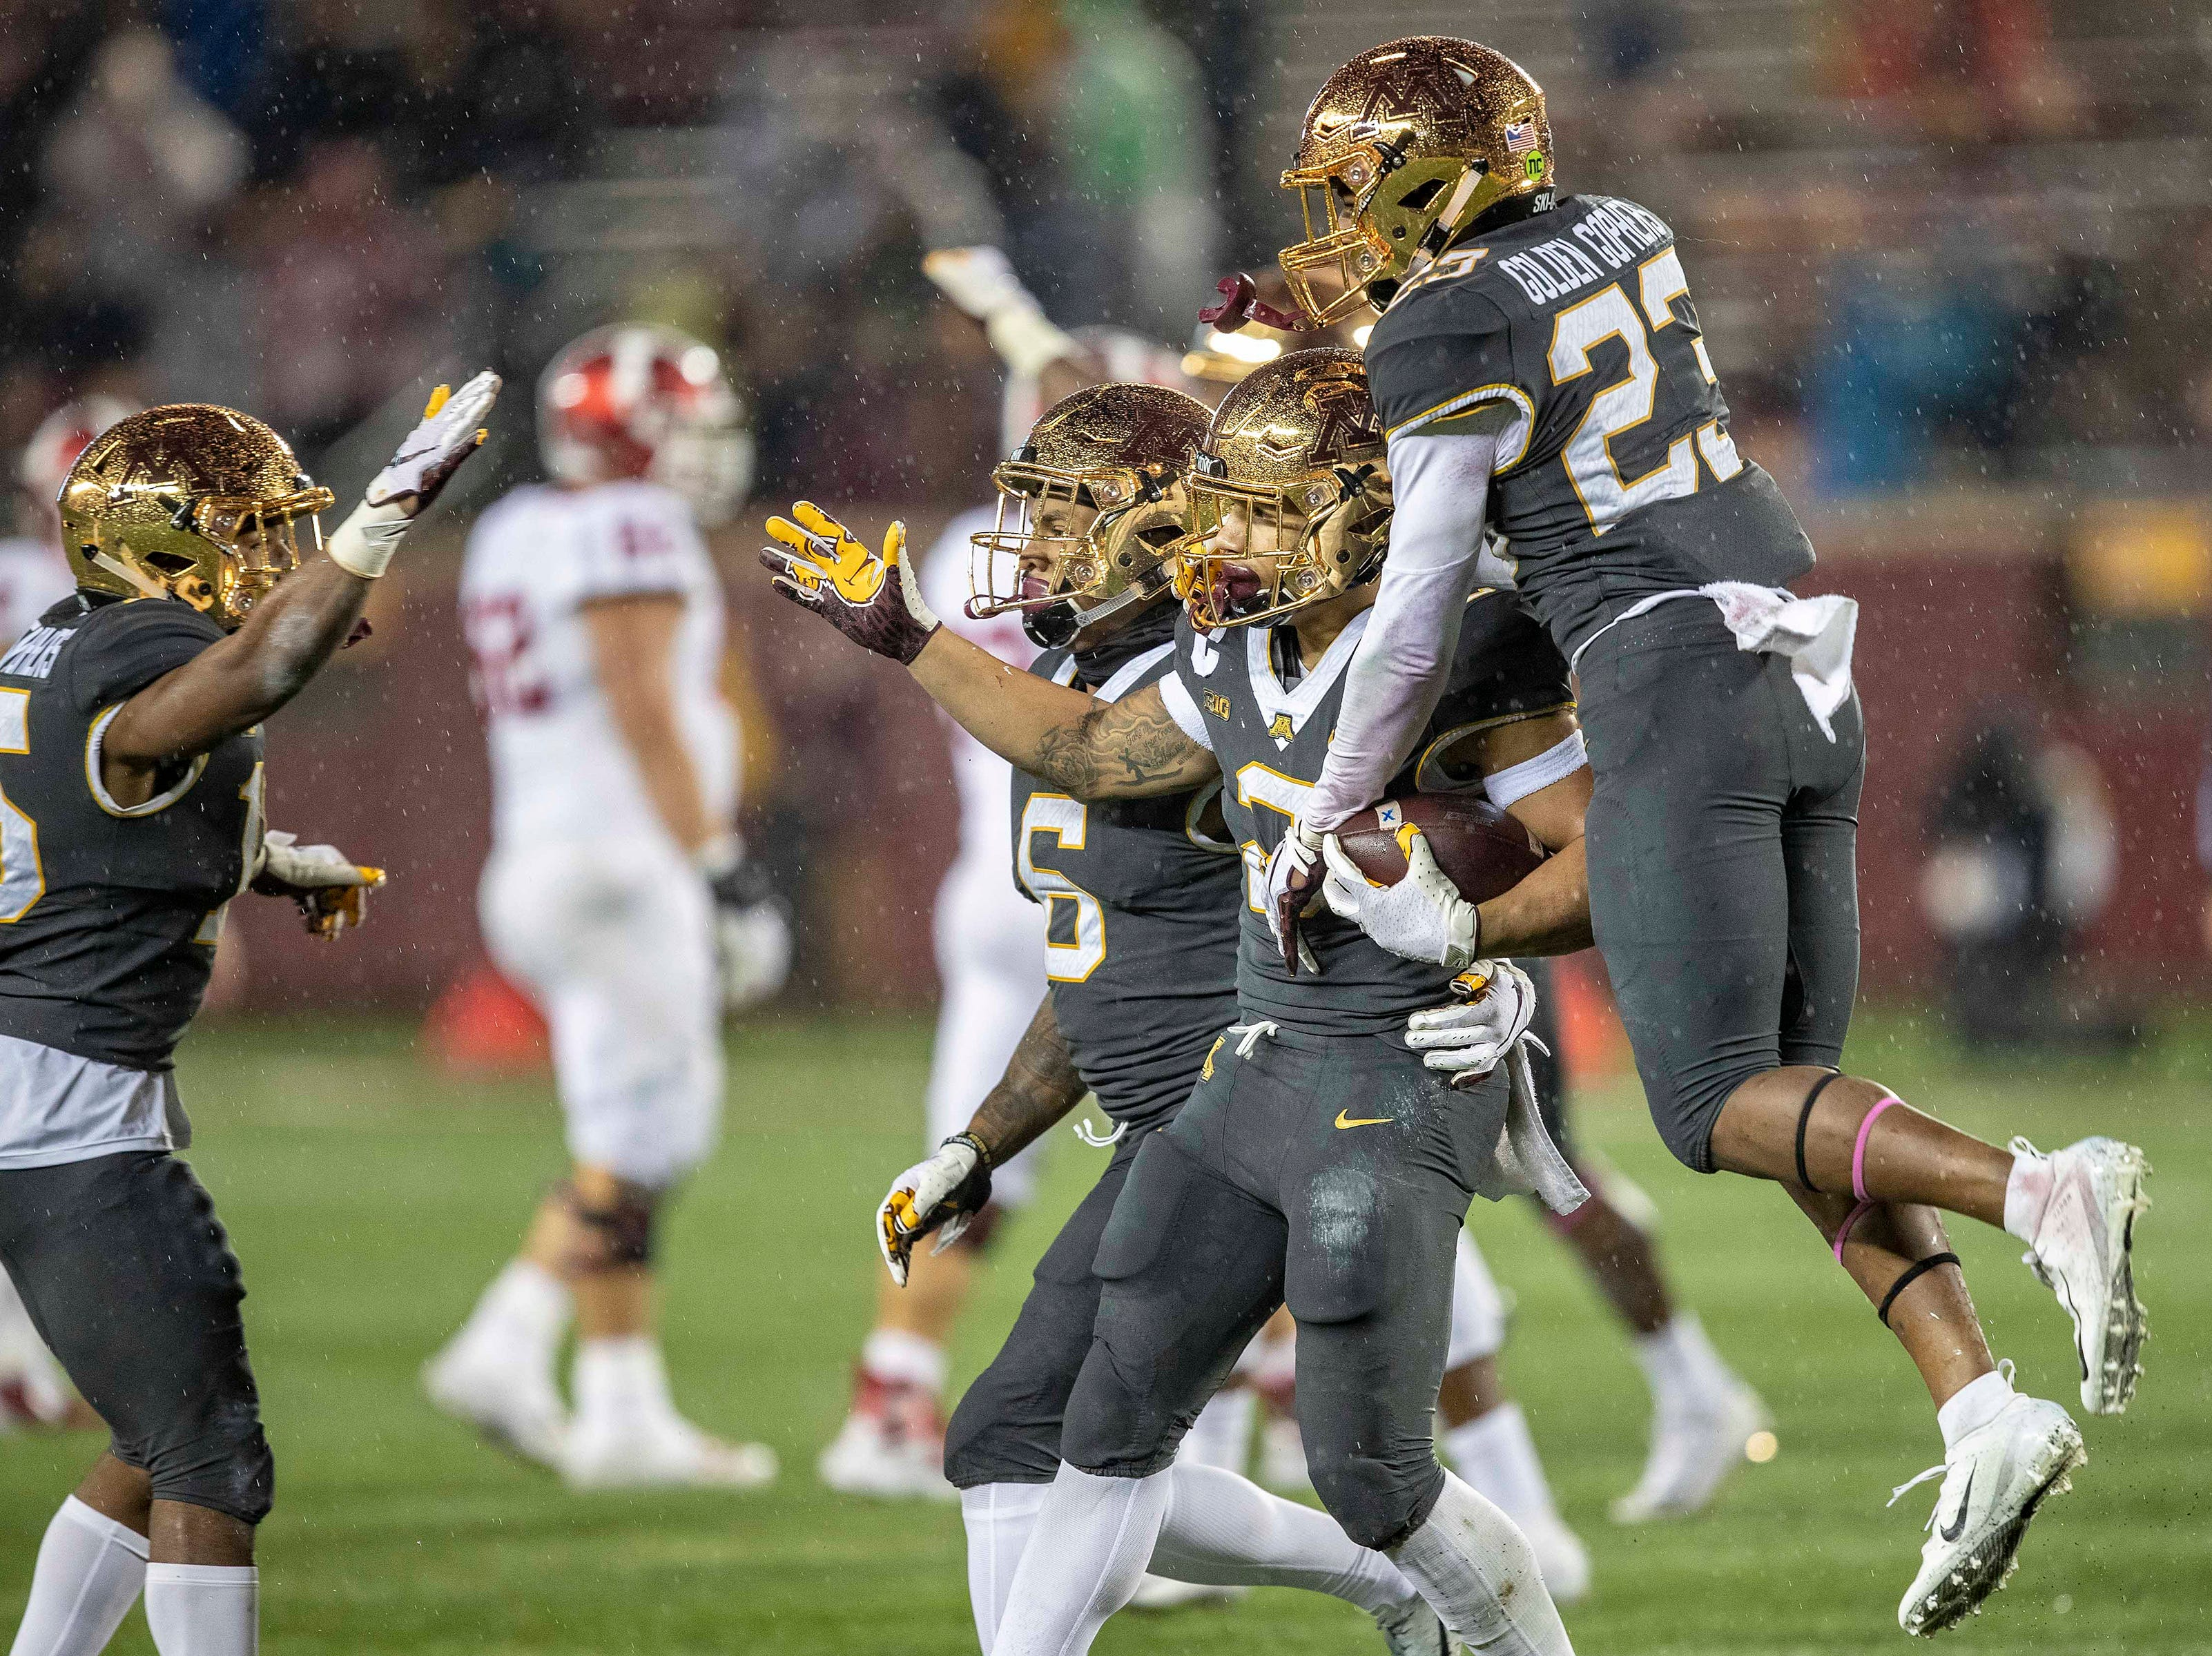 Minnesota Golden Gophers defensive back Jacob Huff (2) celebrates with defensive back Jordan Howden (23) after intercepting a pass in the second half against the Indiana Hoosiers at TCF Bank Stadium.